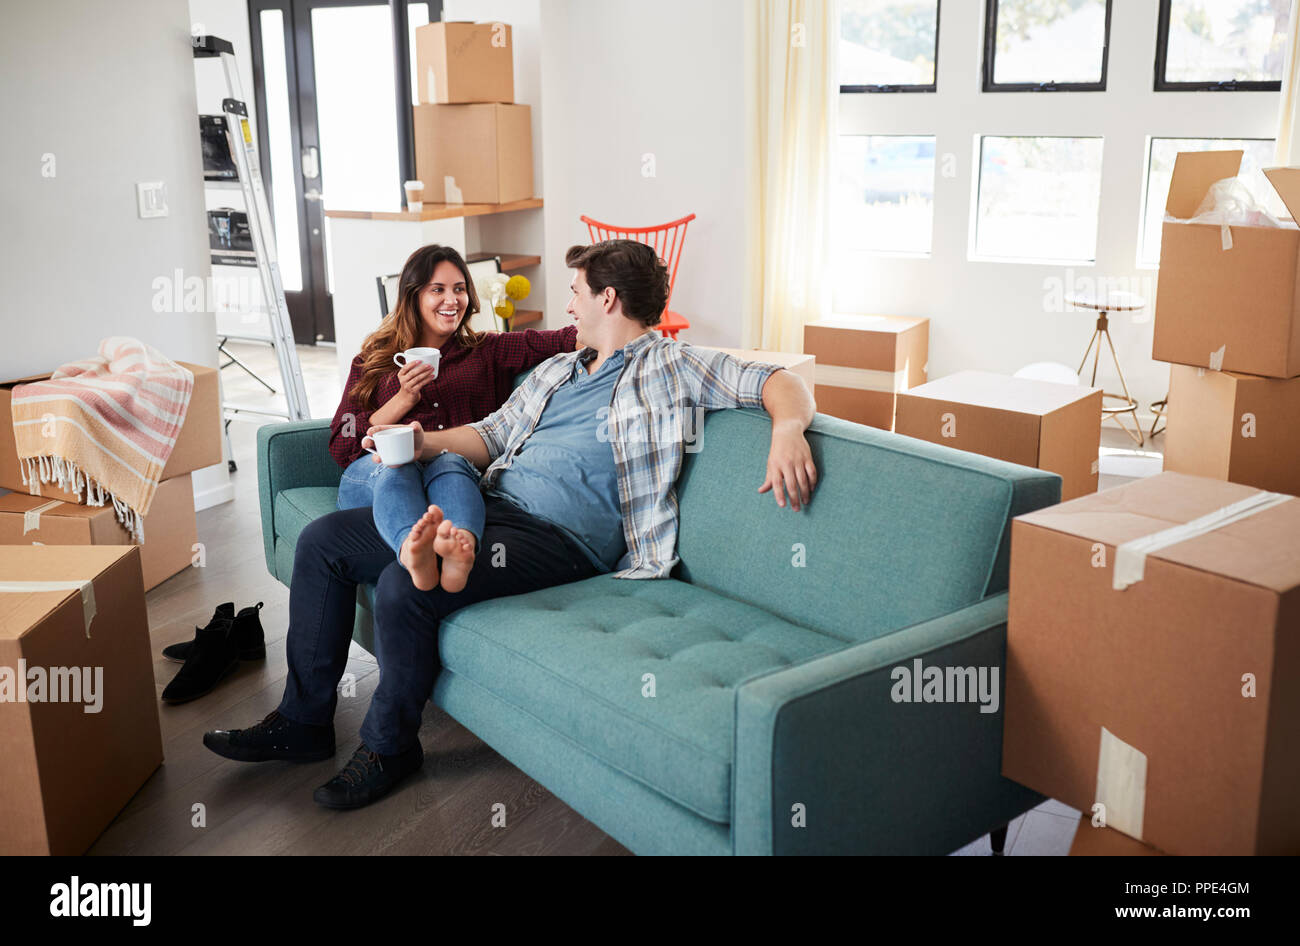 Home Sofa In A Box Happy Couple Resting On Sofa Surrounded By Boxes In New Home On